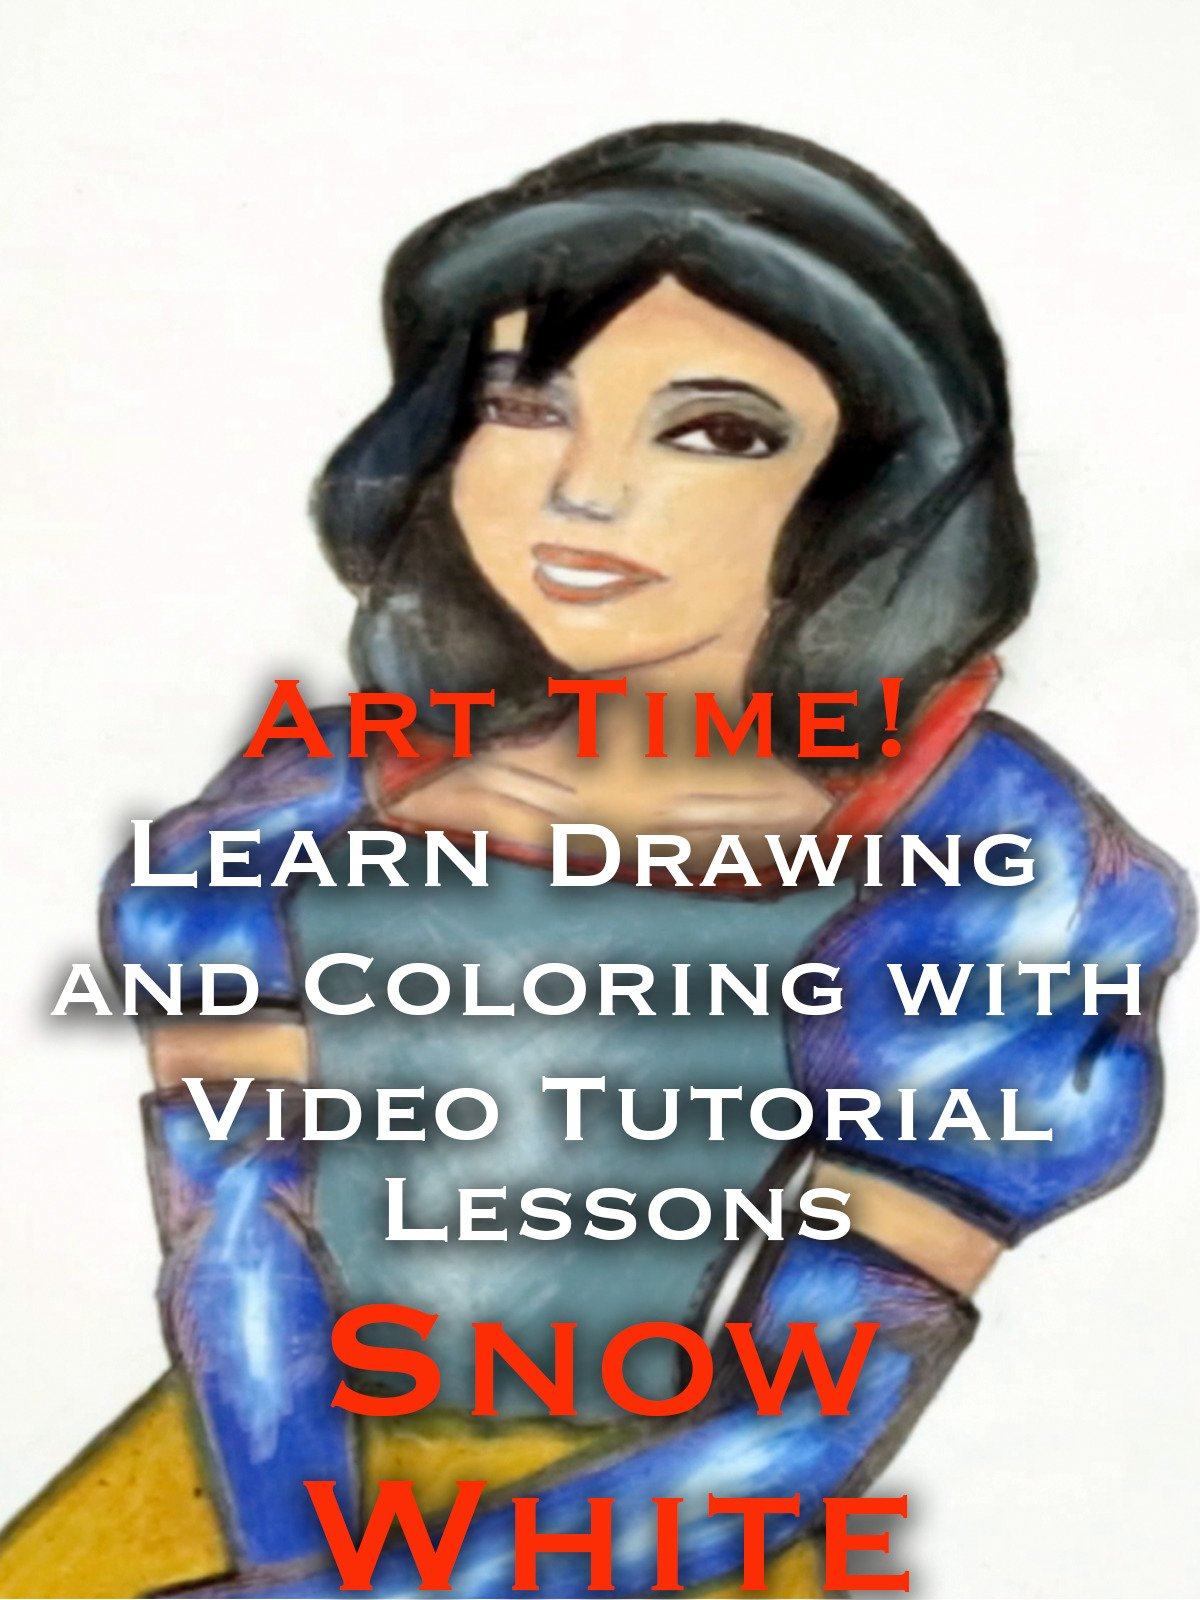 Art Time! Learn Drawing and Coloring with Video Tutorial Lessons Snow White